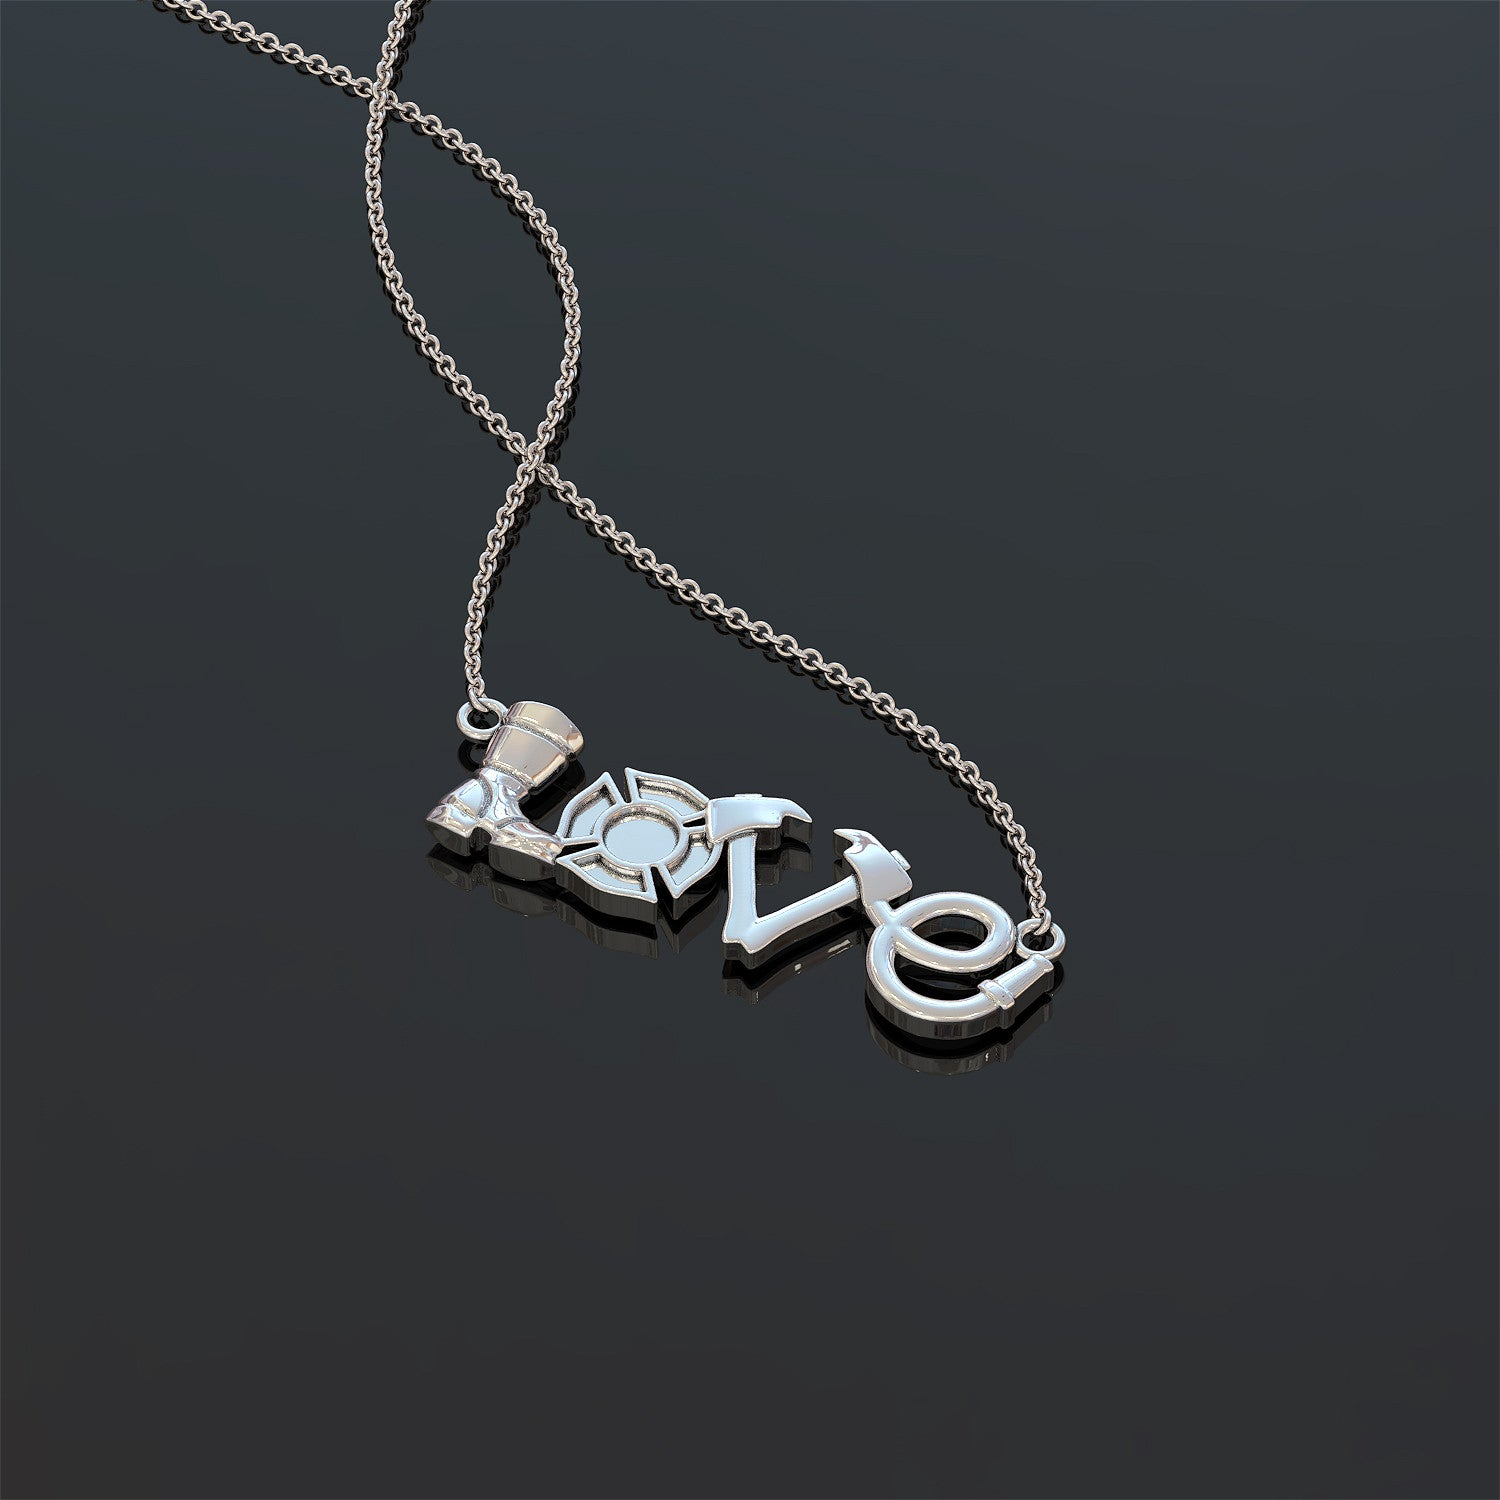 Firefighter Love Pendant Necklace